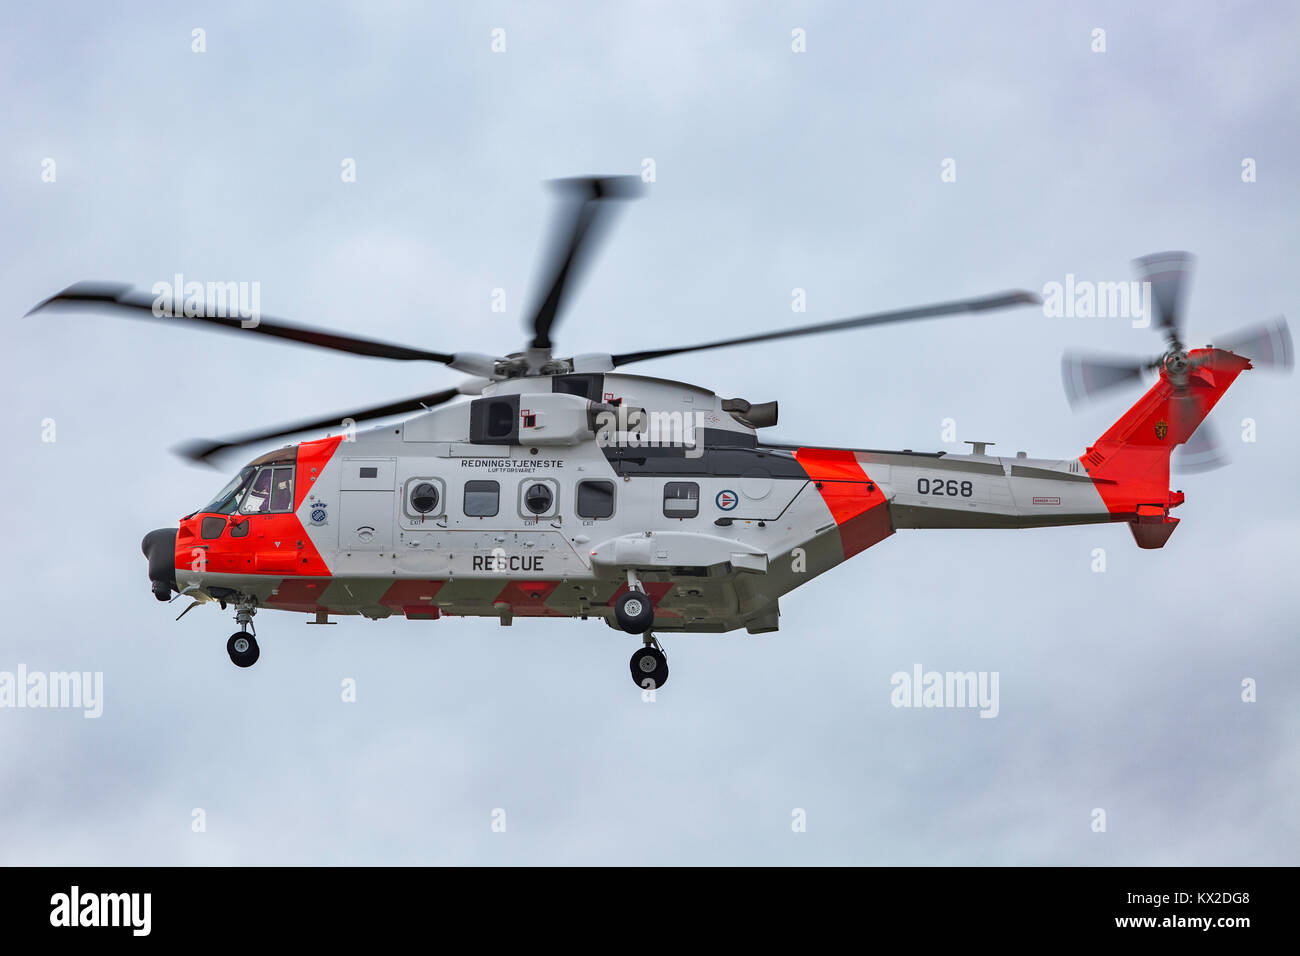 Norwegian Coast Guard Augusta Westland AW101 helicopter on delivery flight landing at Newcastle International Airport - Stock Image